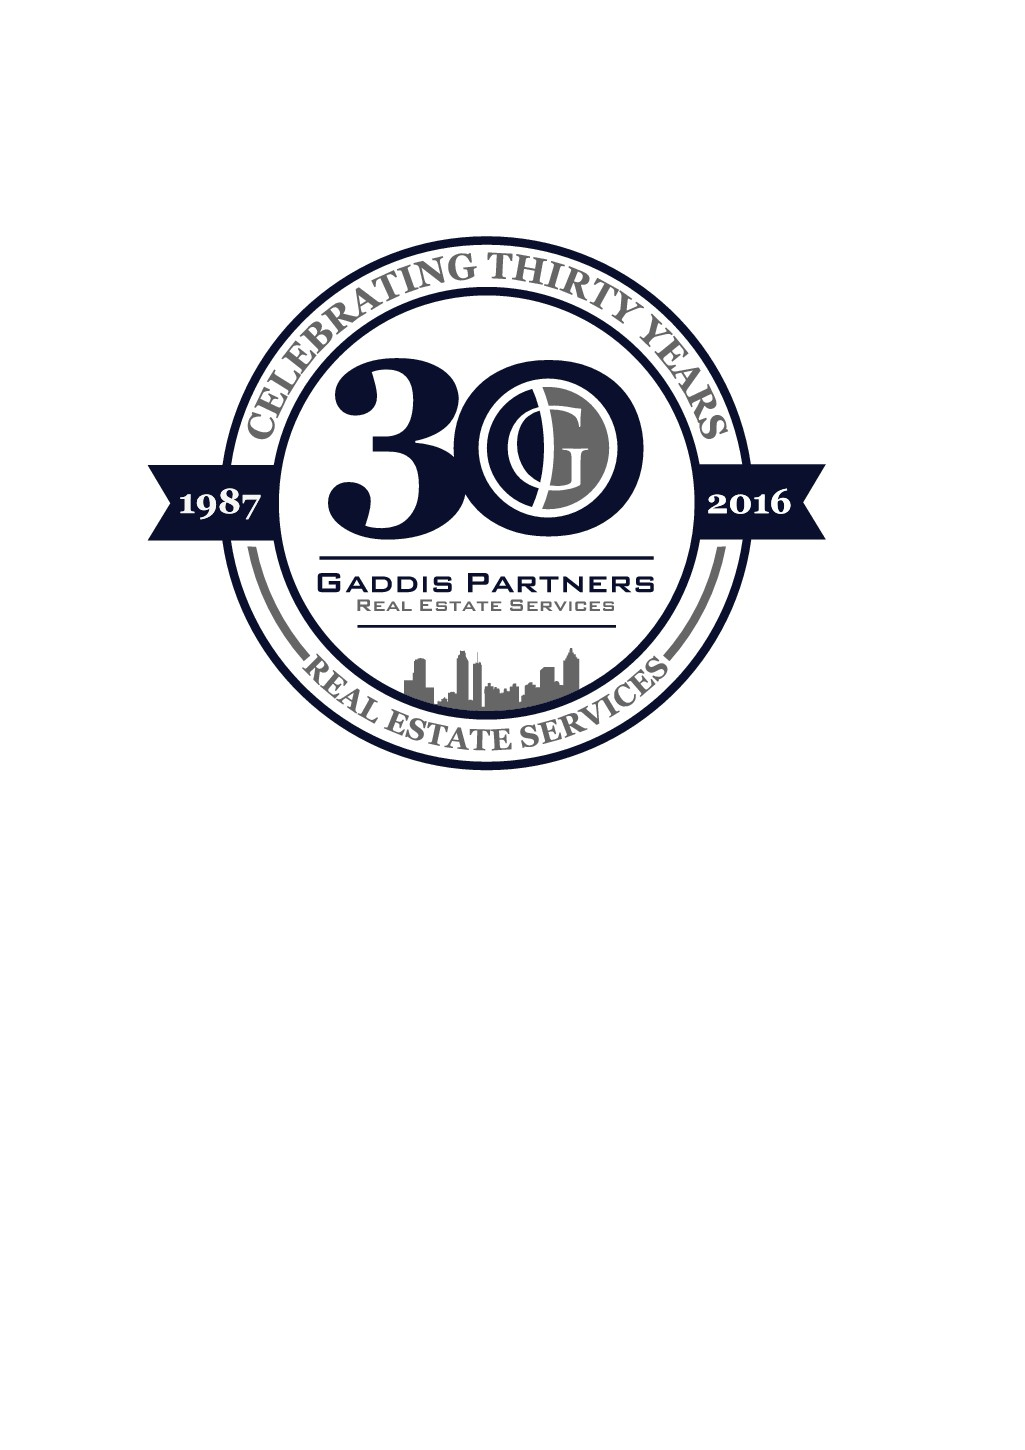 Gaddis Partners needs a 30 year Celebration logo